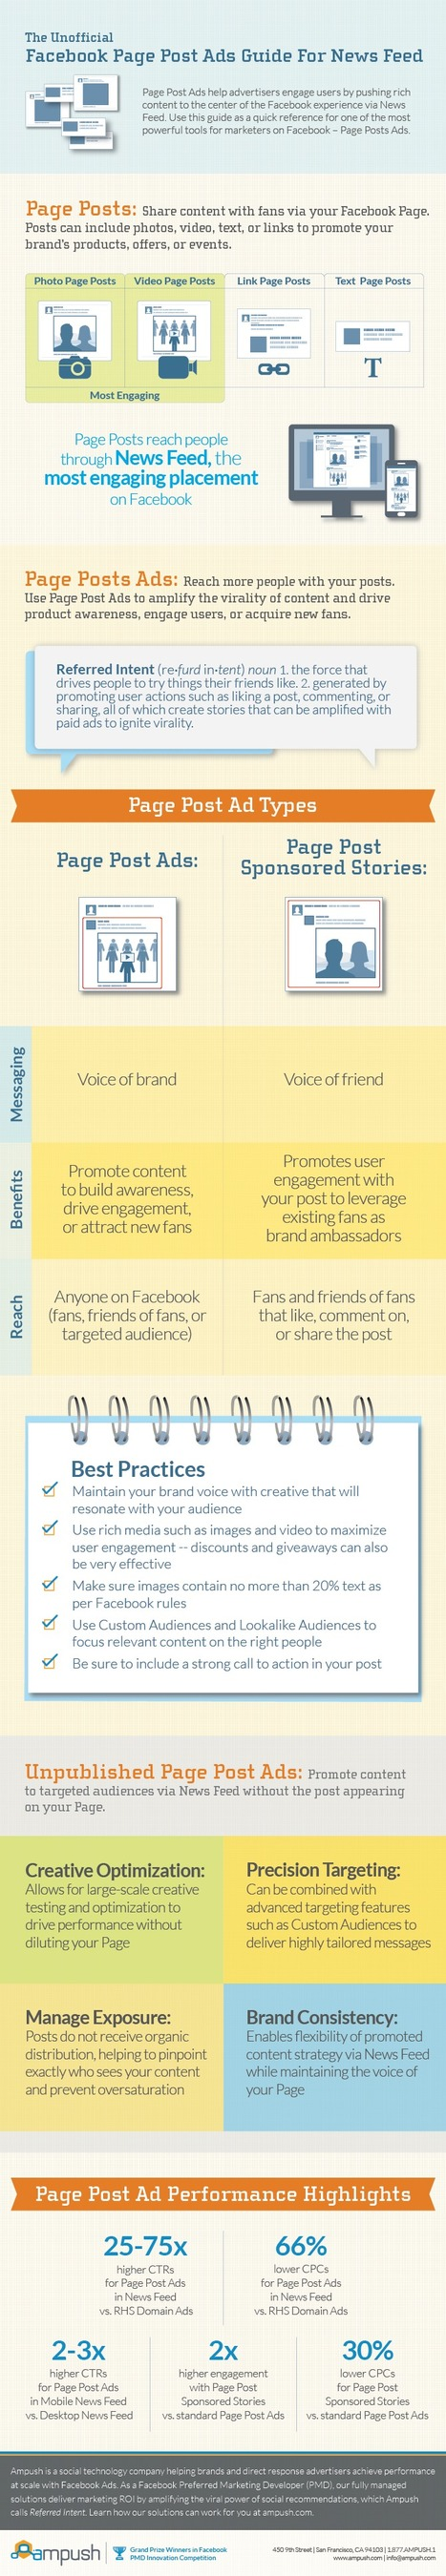 Infographic: A Guide To Facebook Page Post Ads - Ampush | Social Media & Marketing | Scoop.it